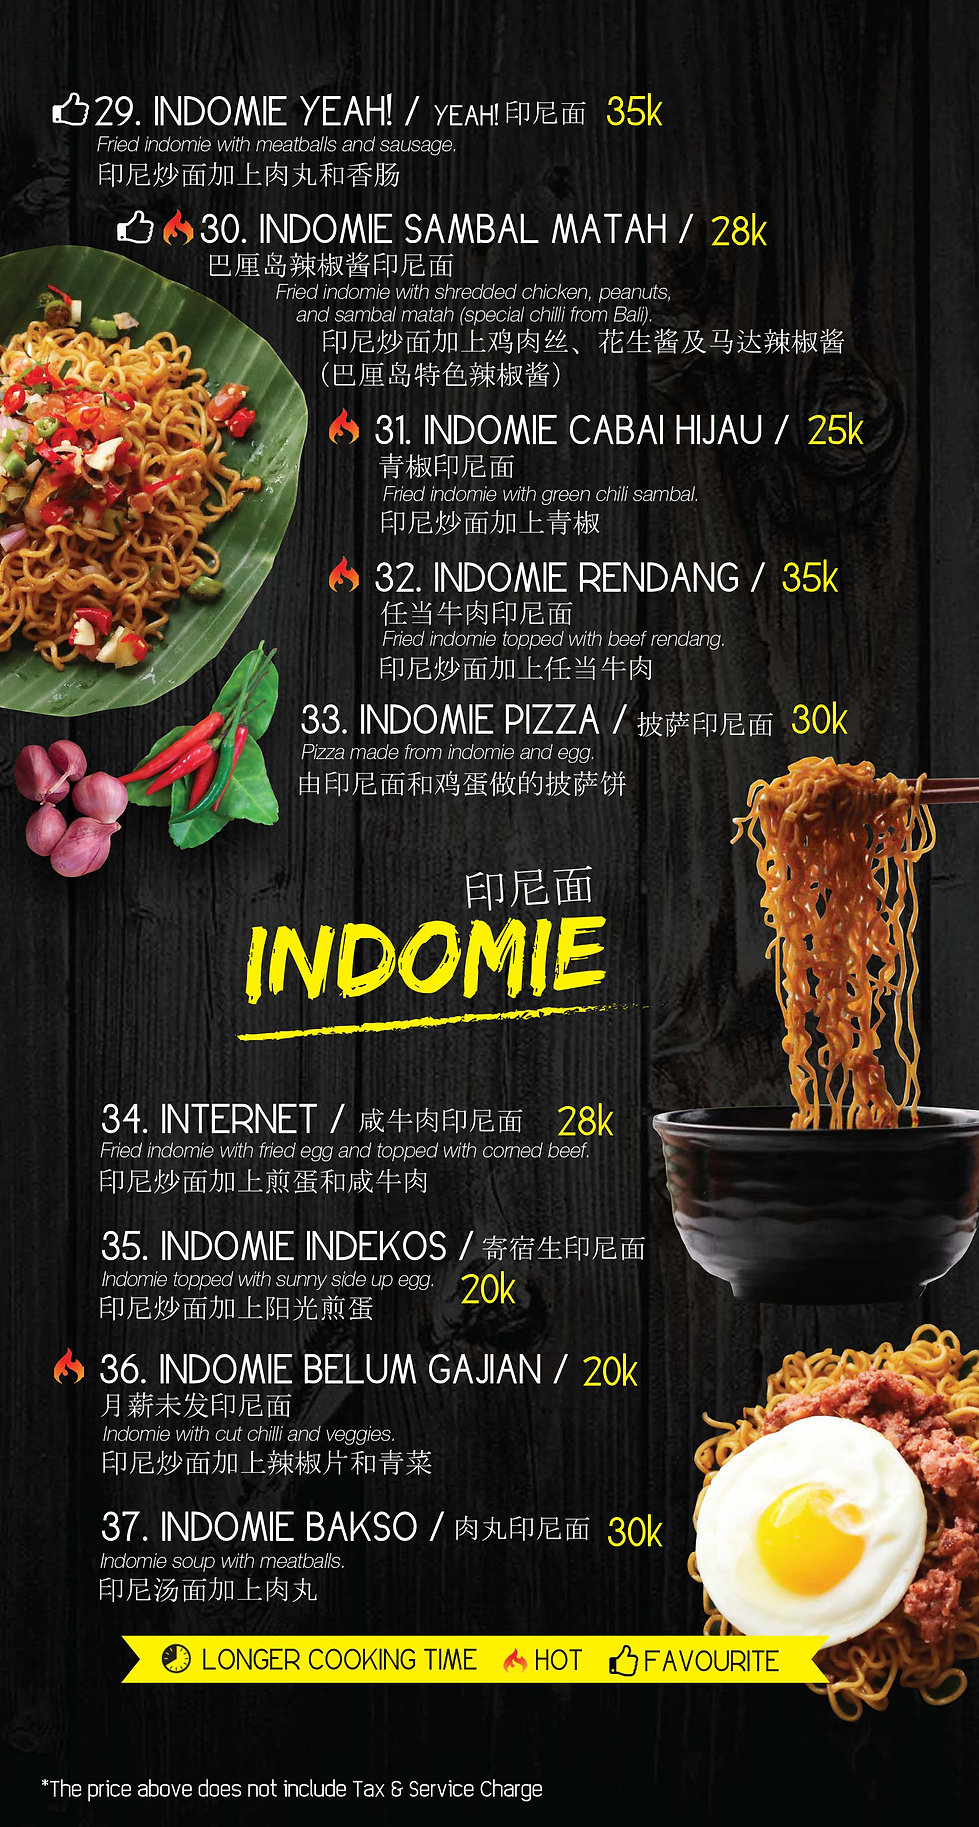 MENU WARUNG new-6.jpg